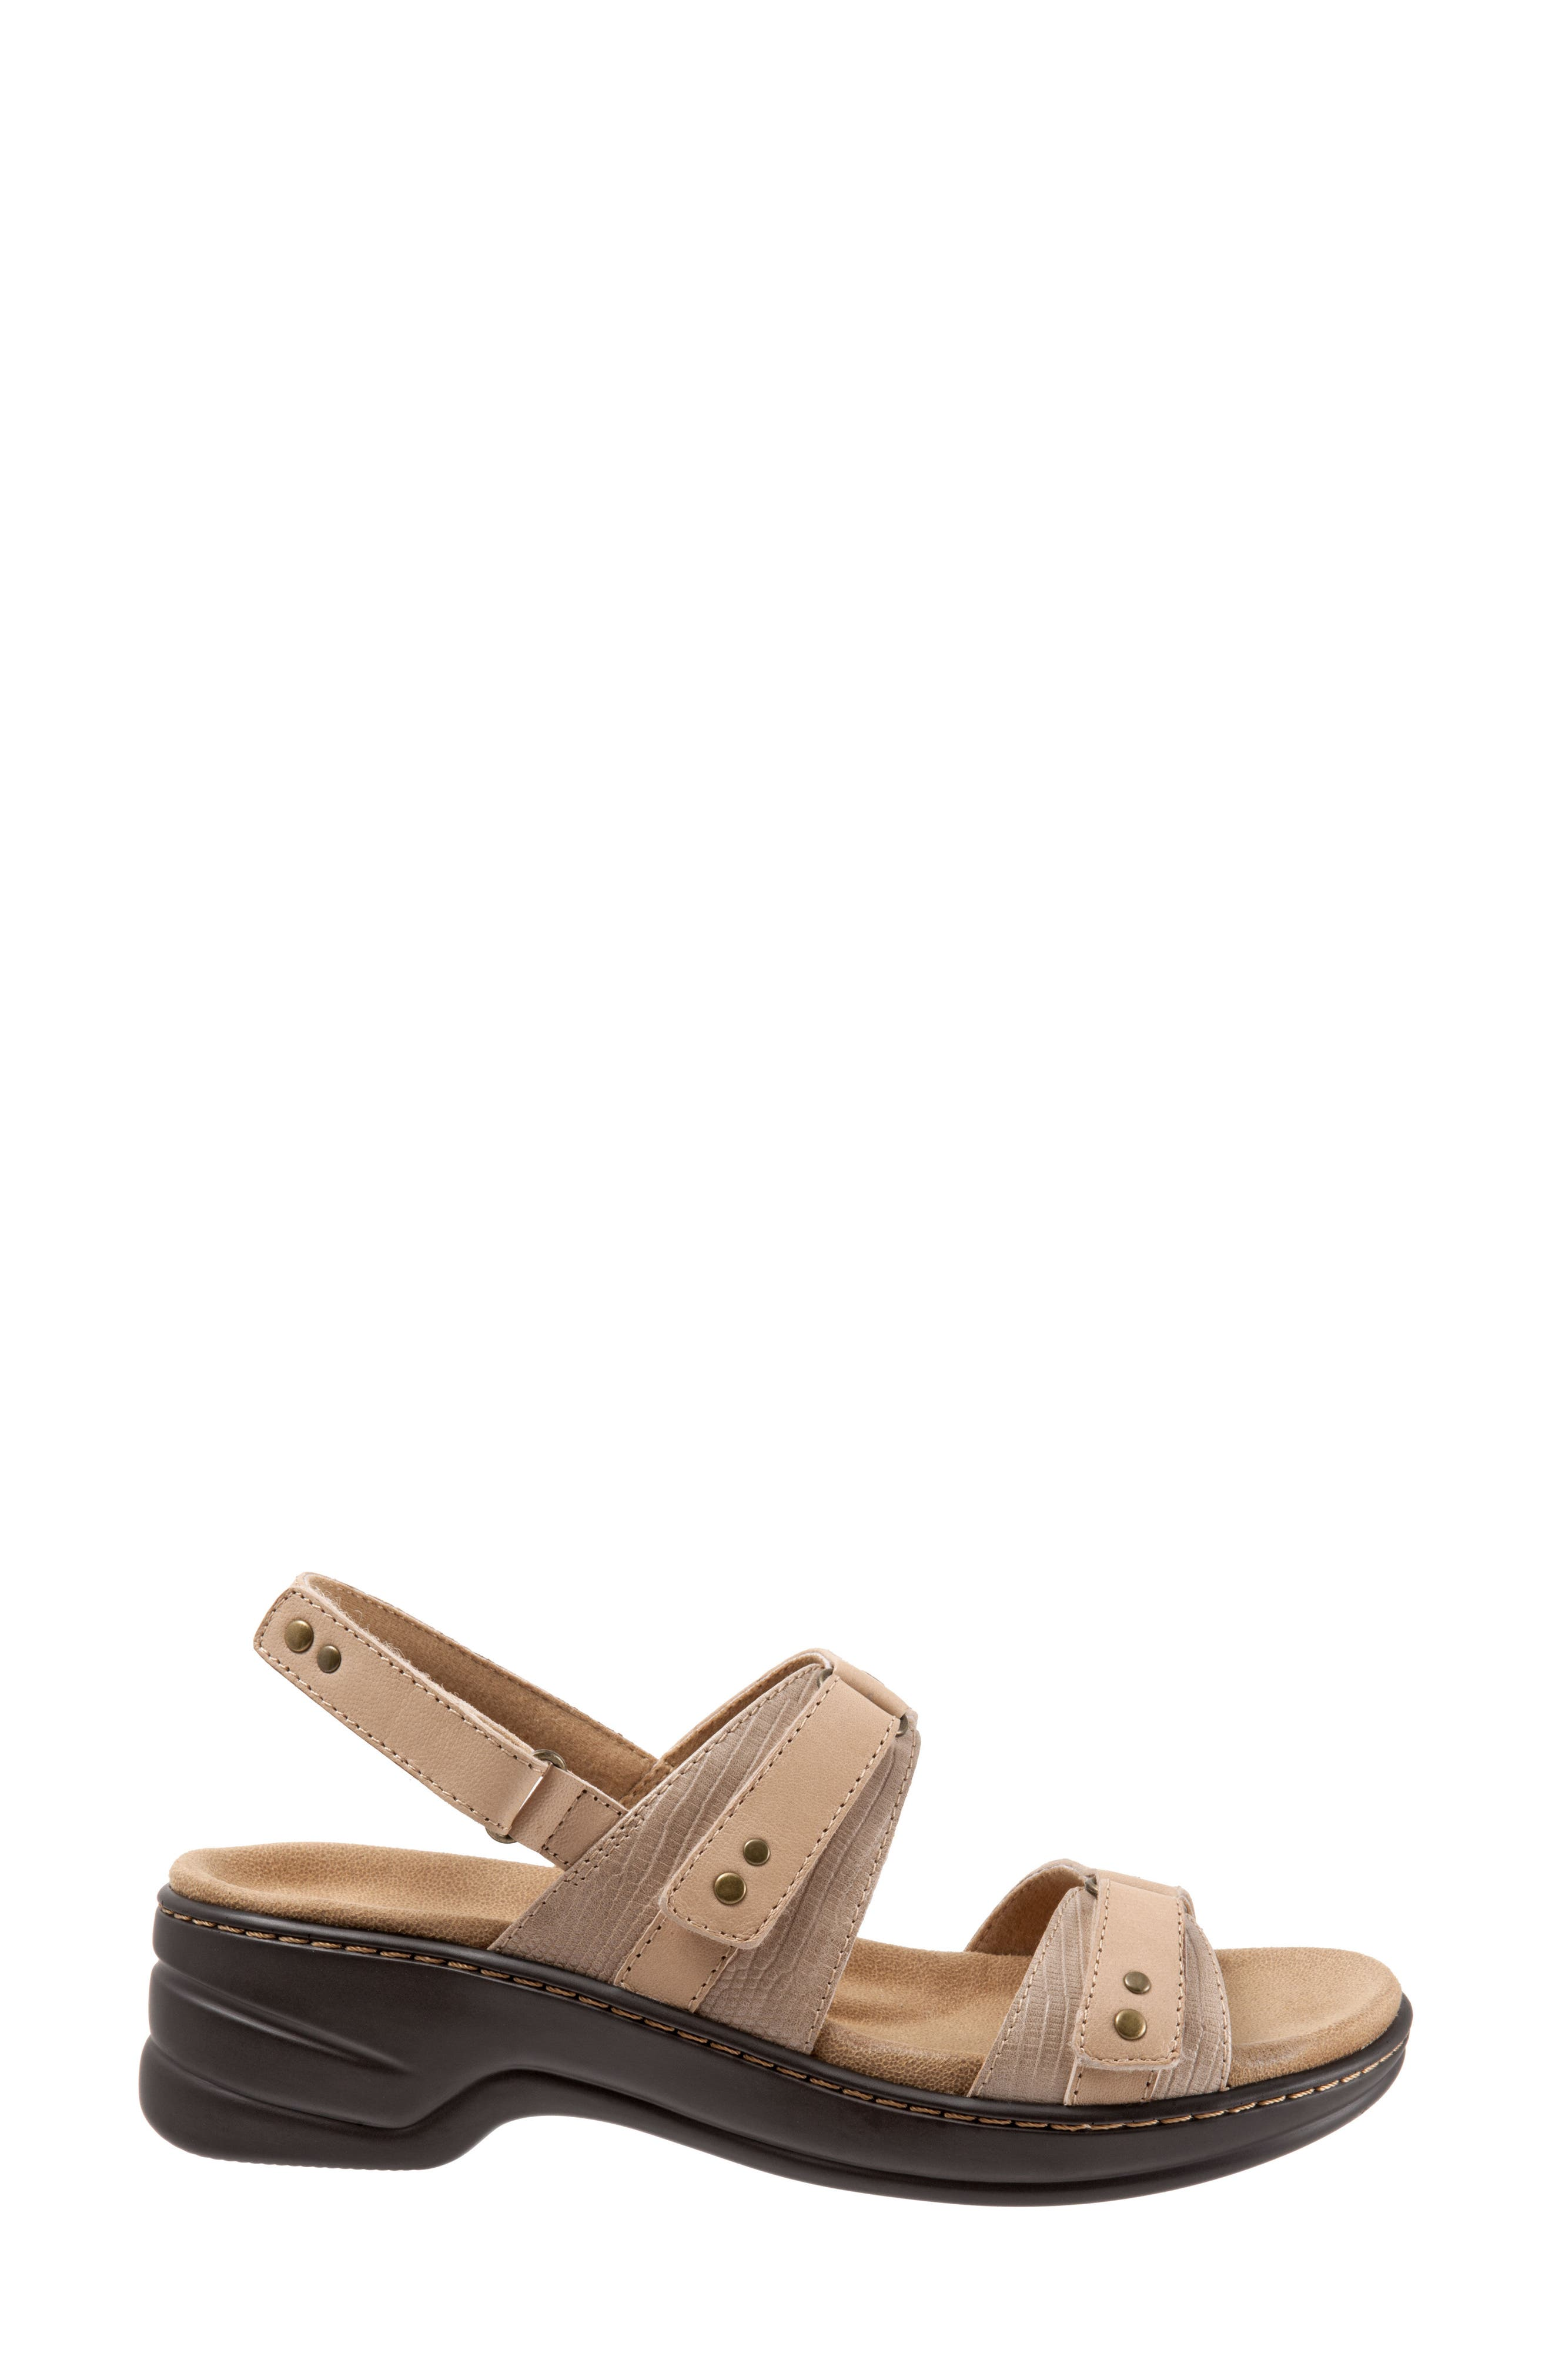 Newton Sandal,                             Alternate thumbnail 3, color,                             Beige/ Off White Leather